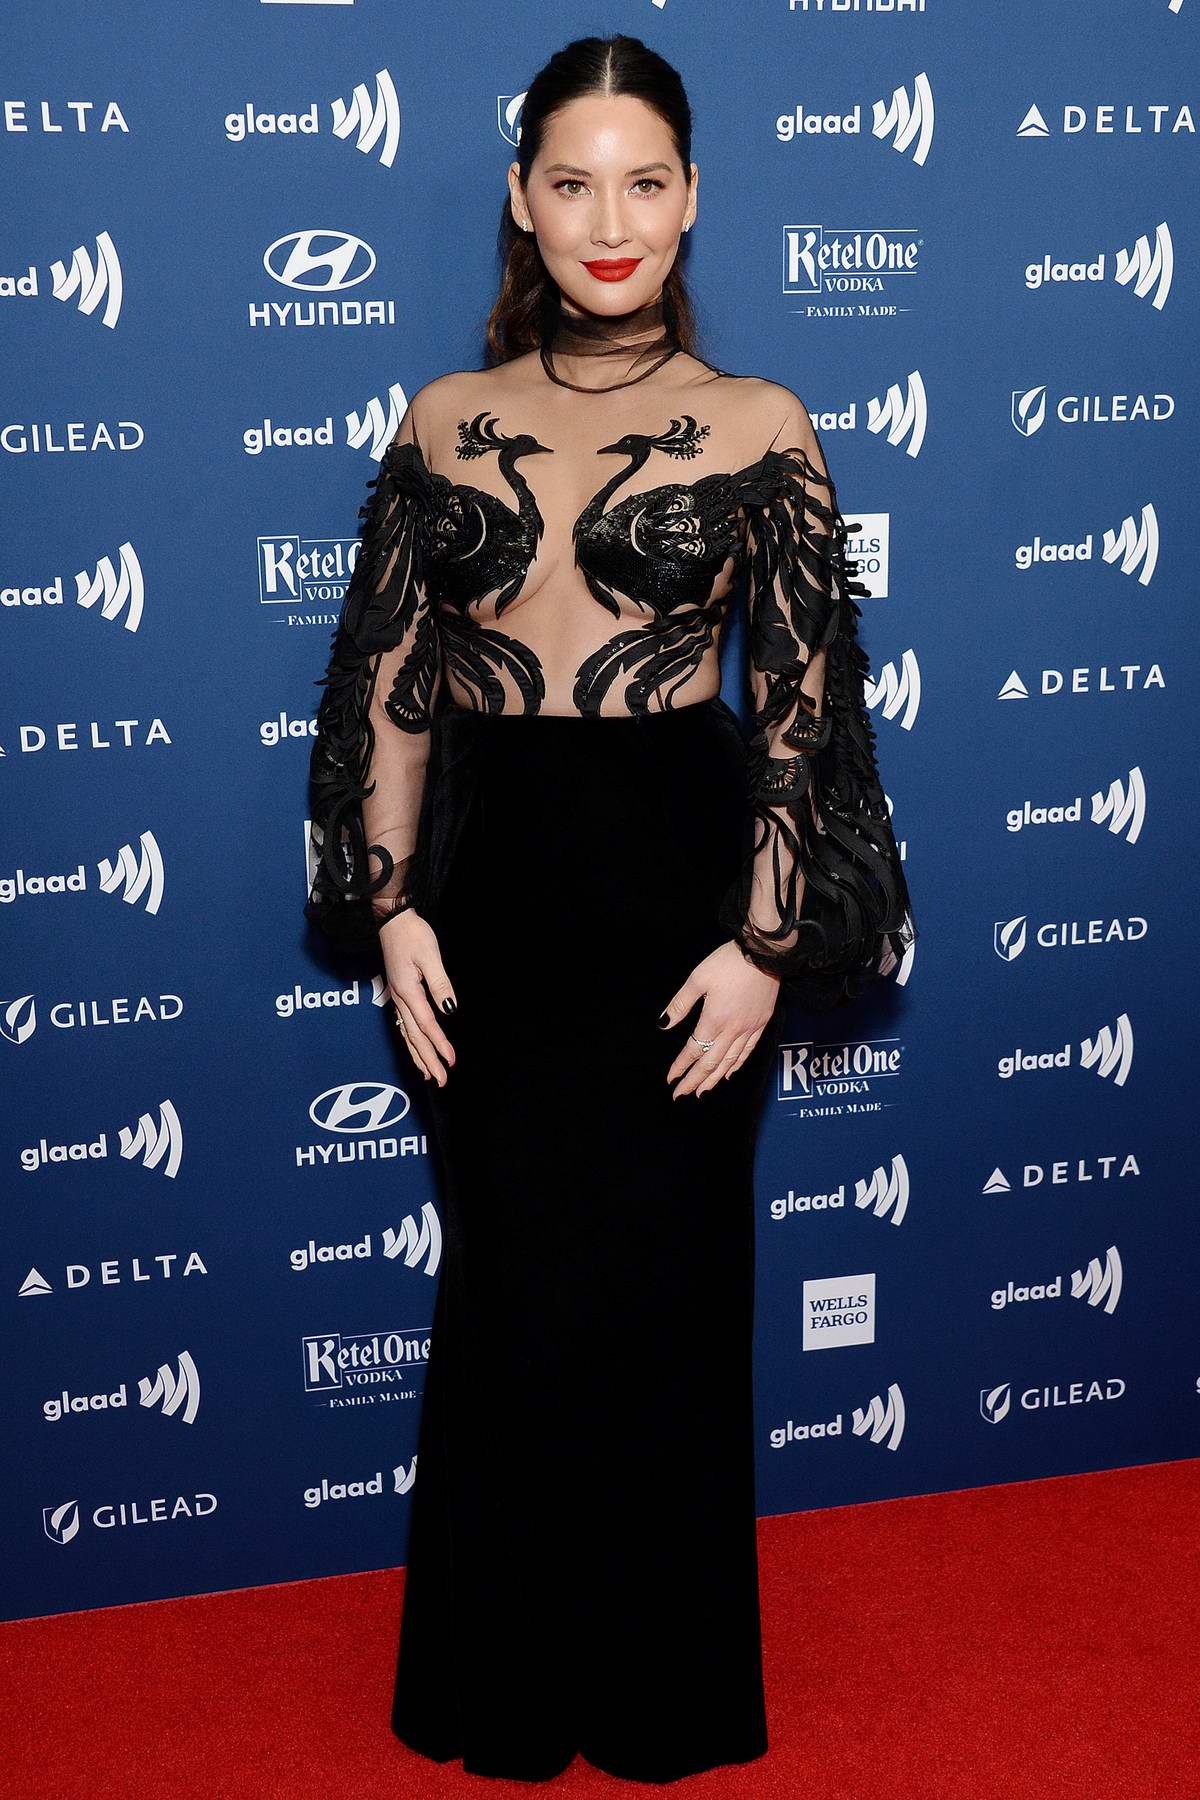 Olivia Munn attends the 30th Annual GLAAD Media Awards at The Beverly Hilton Hotel in Beverly Hills, California